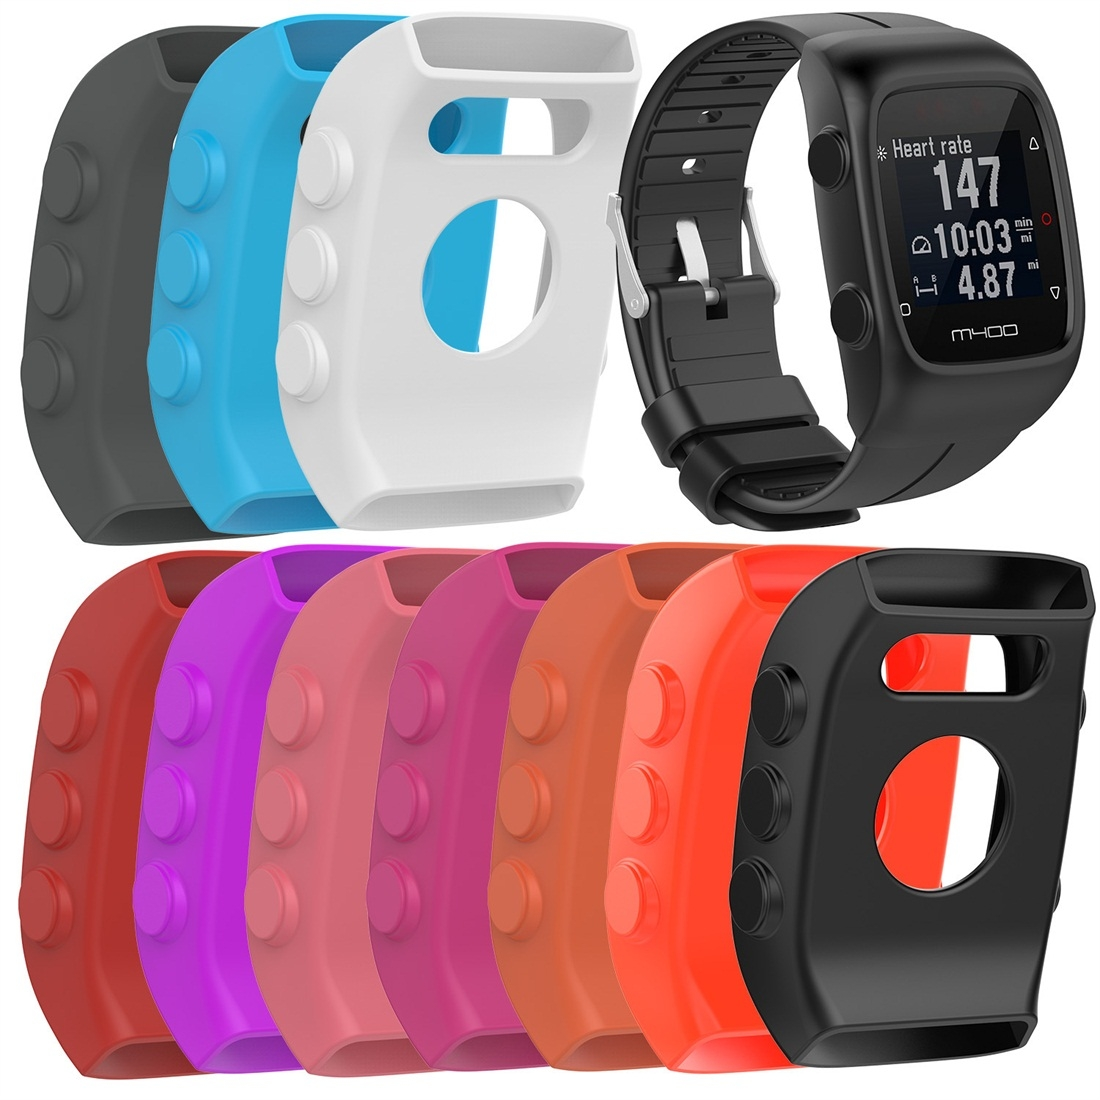 Smart Watch Silicone Protective Case for POLAR M430 (Sky Blue)